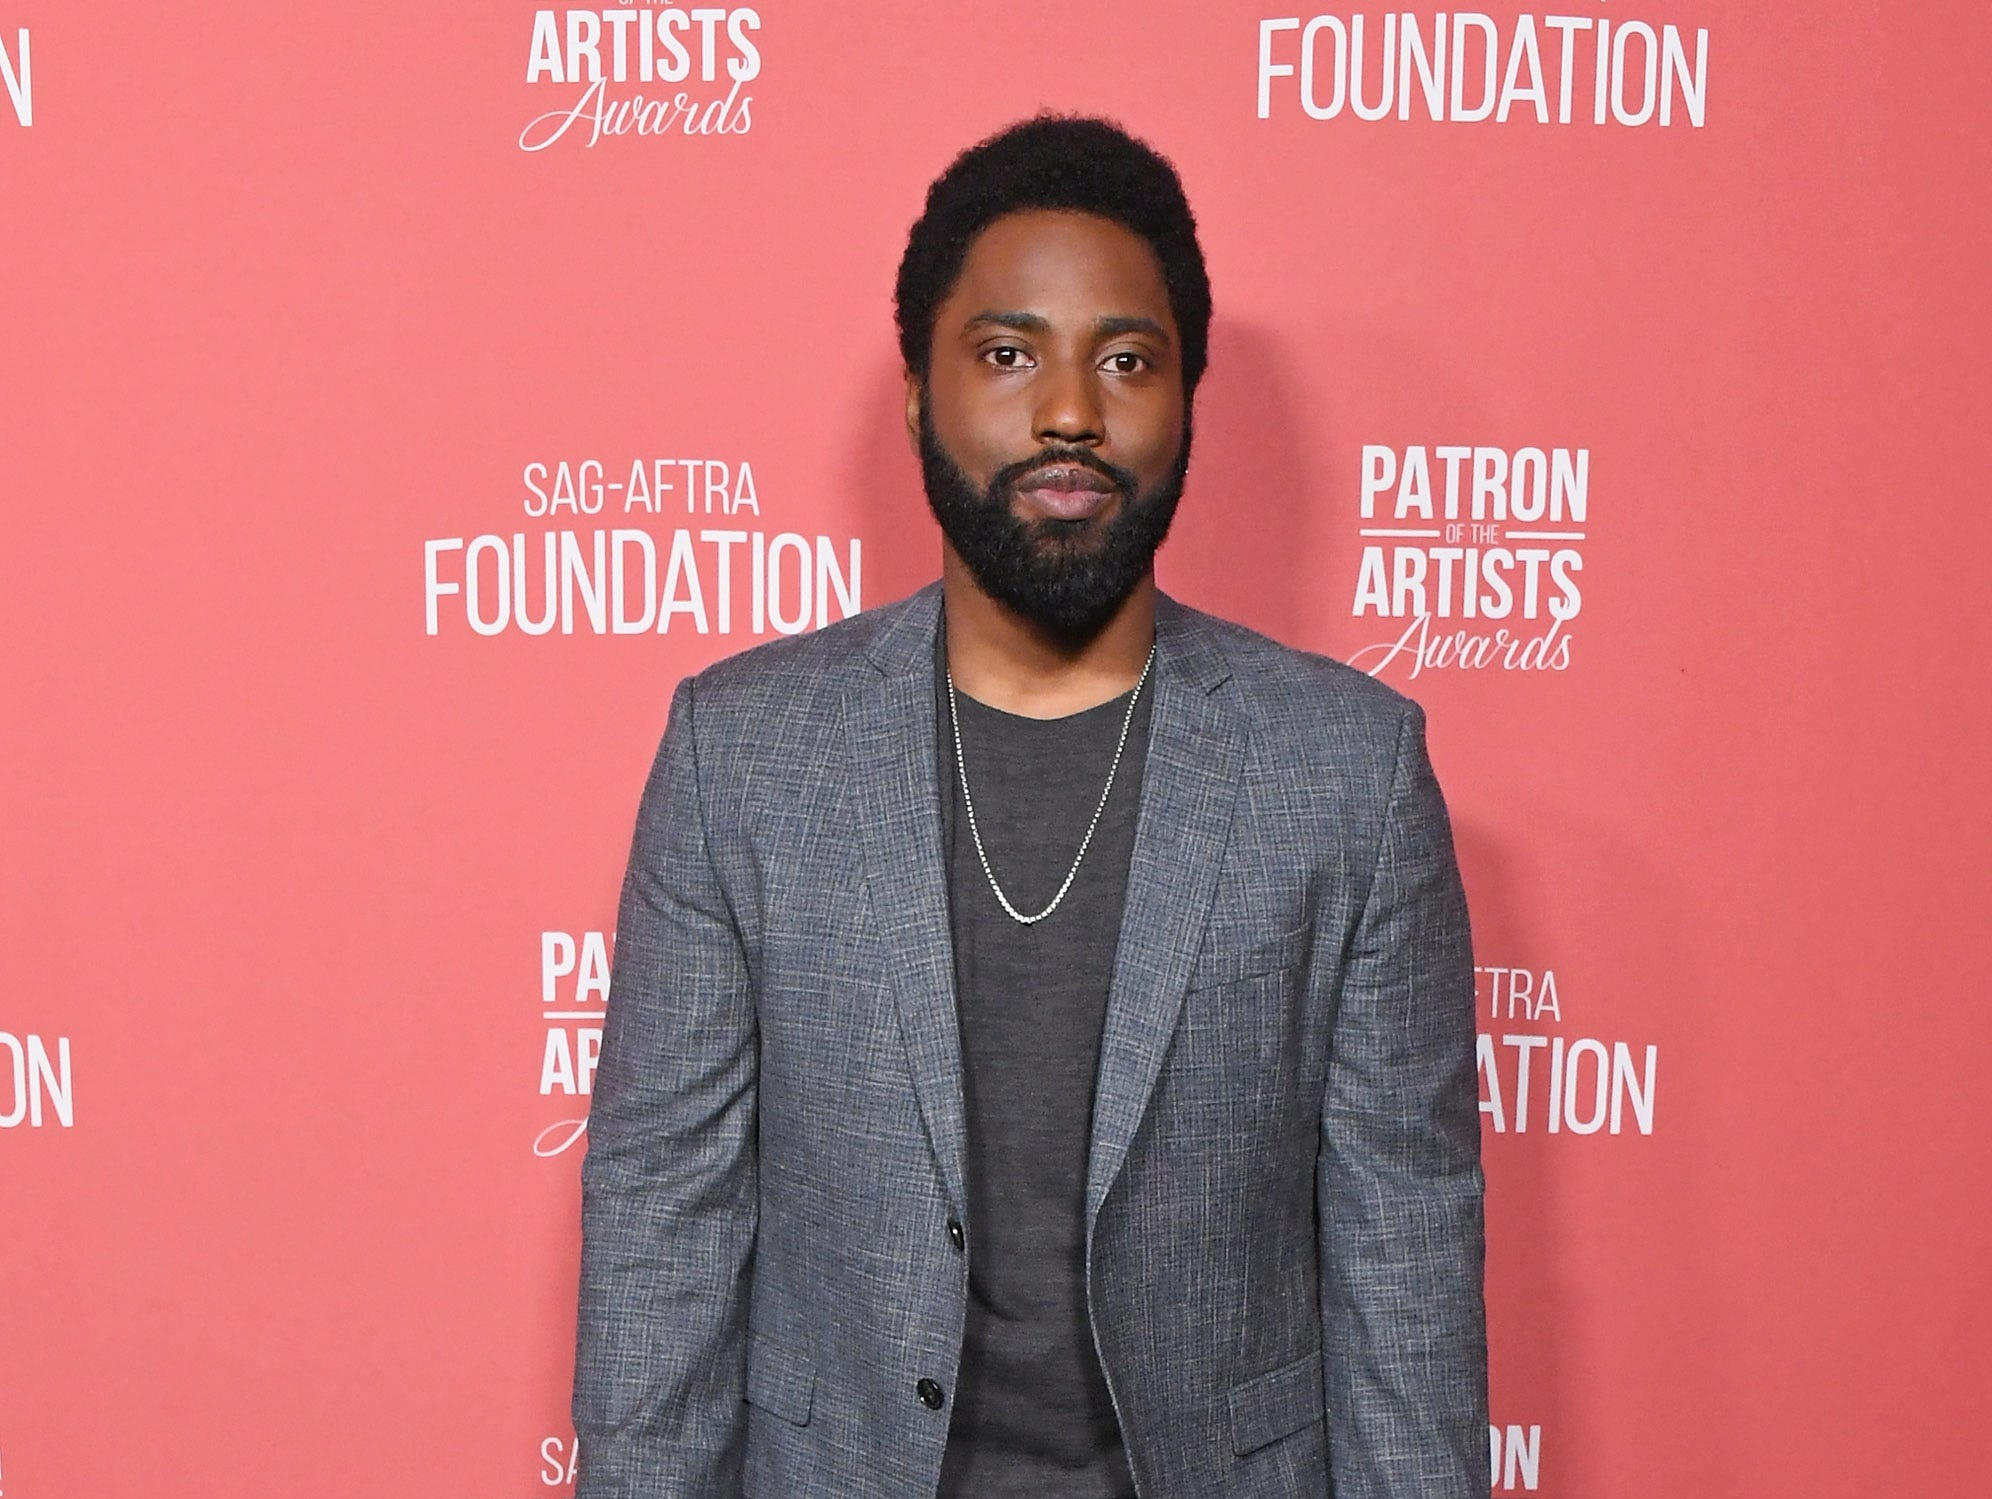 BEVERLY HILLS, CA - NOVEMBER 08:  John David Washington attends SAG-AFTRA Foundation's 3rd Annual Patron Of The Artists Awards at Wallis Annenberg Center for the Performing Arts on November 8, 2018 in Beverly Hills, California.  (Photo by Jon Kopaloff/FilmMagic) ORG XMIT: 775233471 ORIG FILE ID: 1059469416